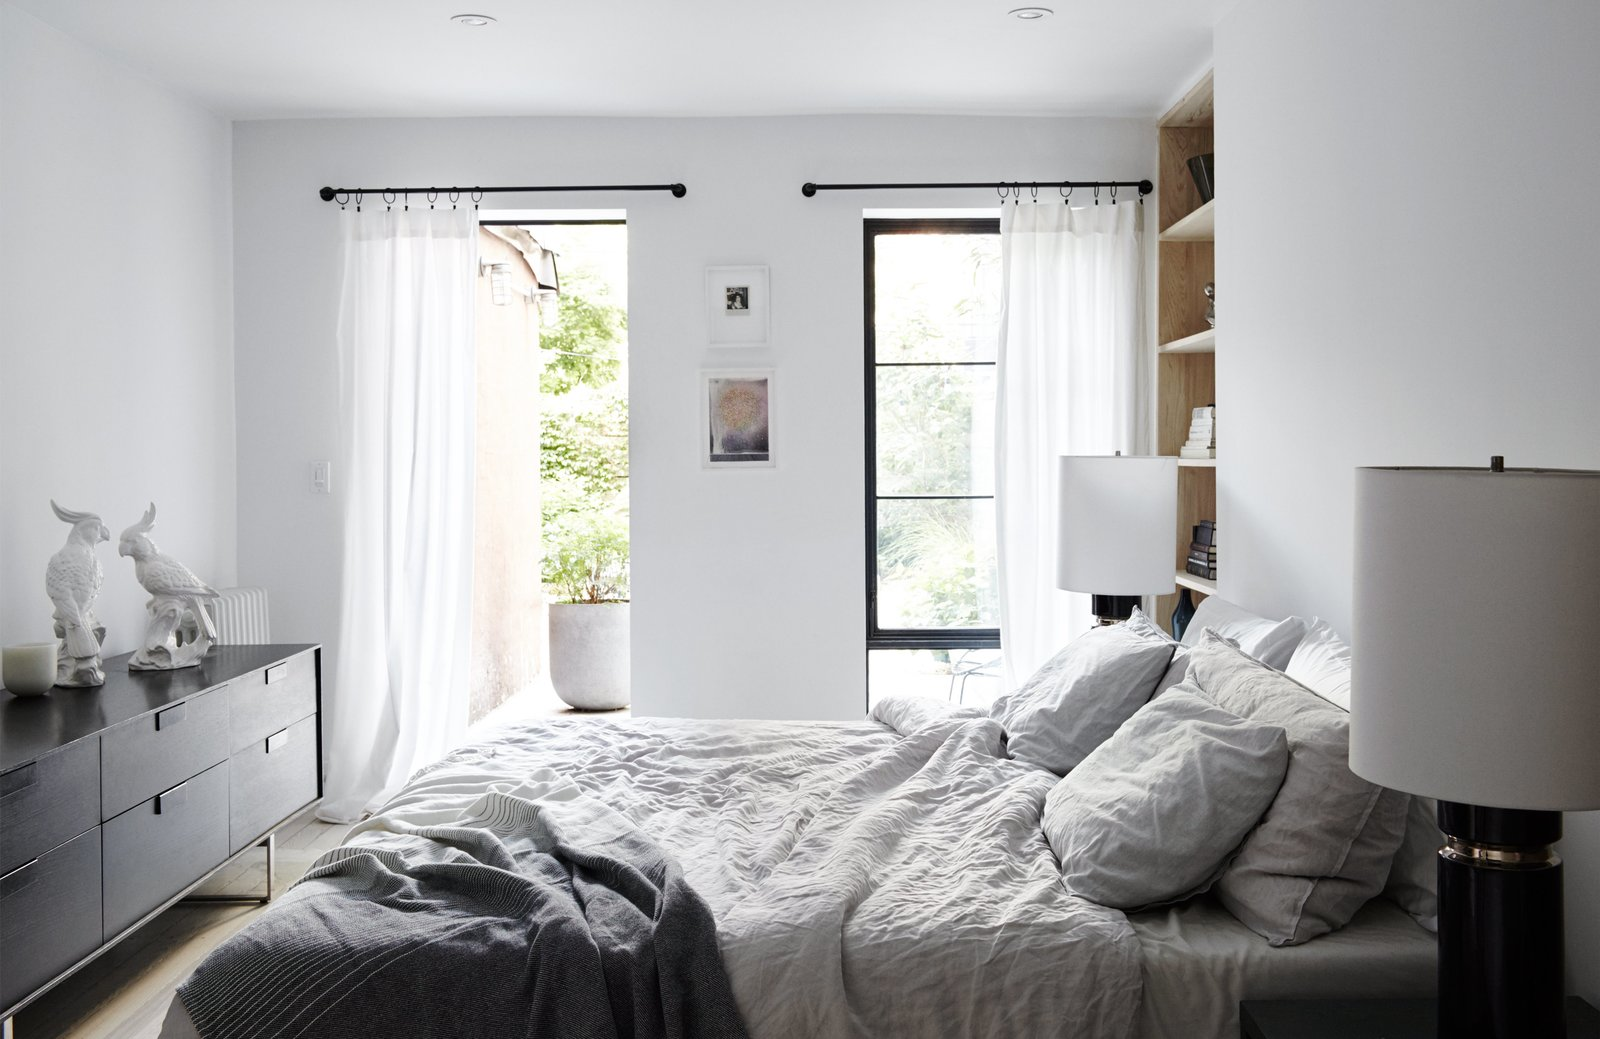 Madelena-Gnewikow Residence bedroom with black and white accents and built-in shelving beside the bed.